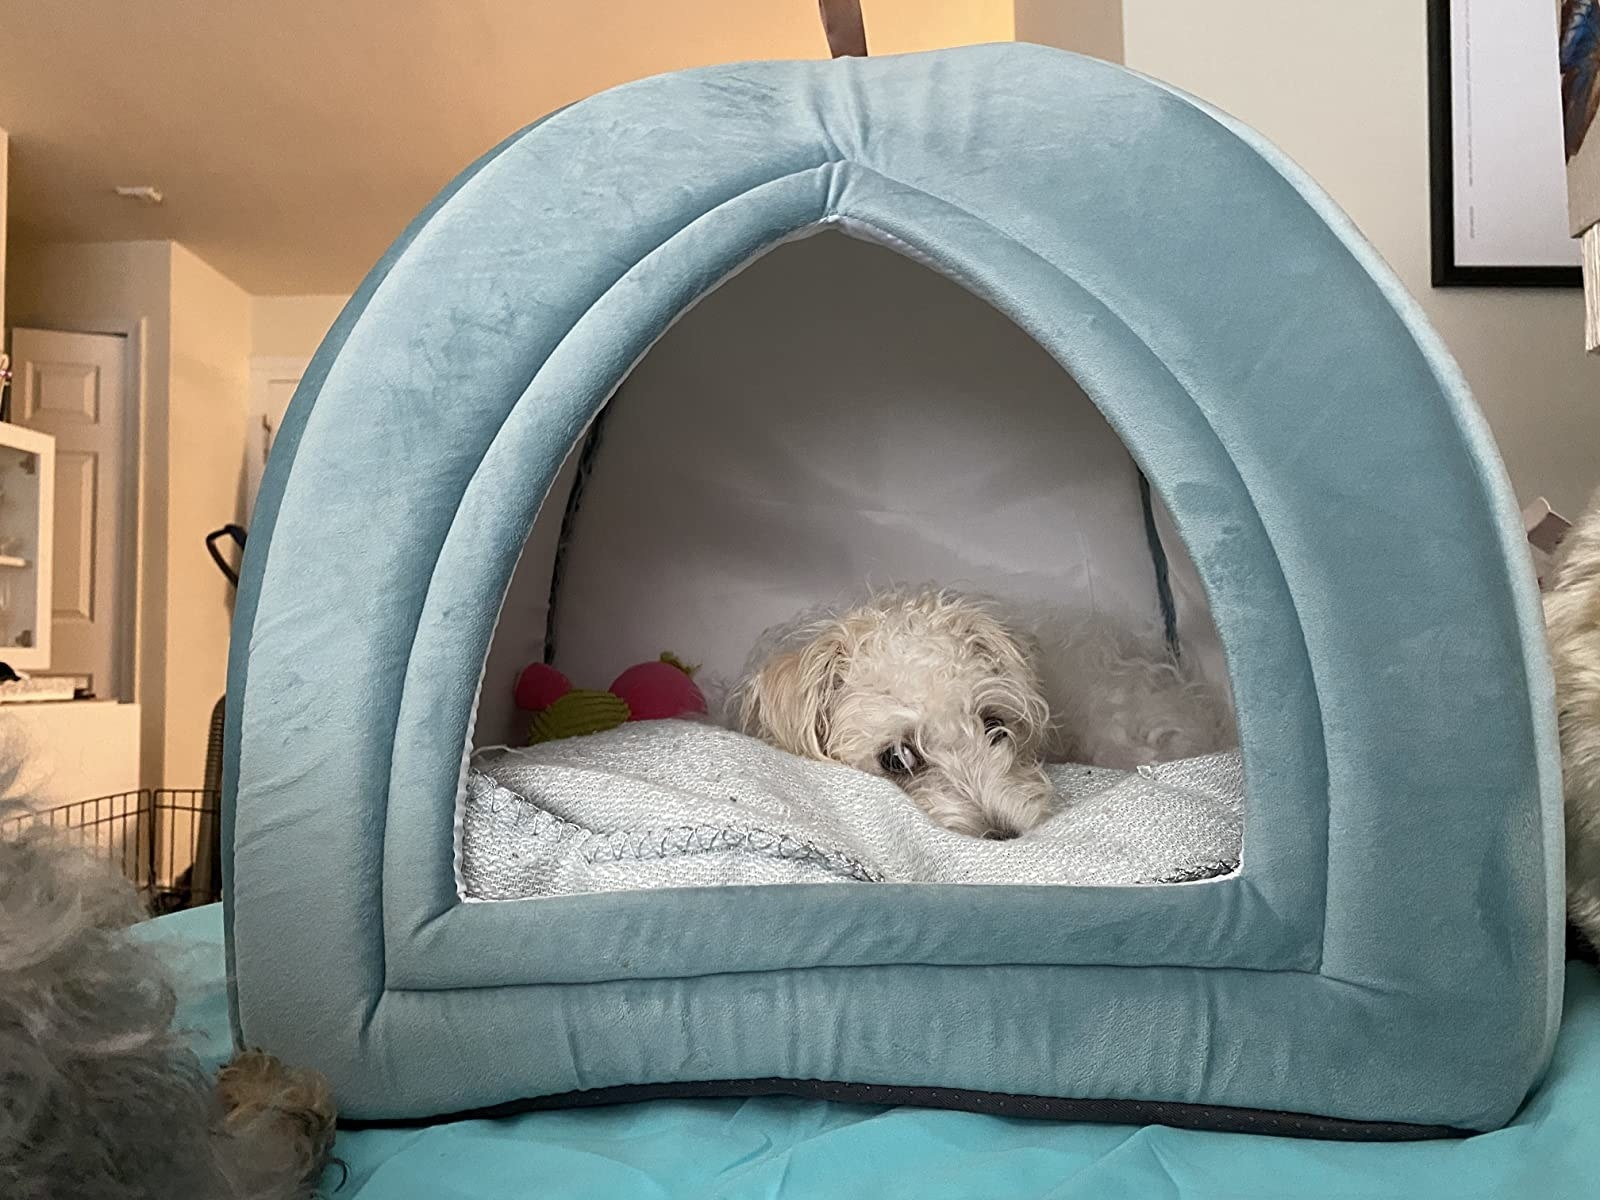 a small white dog lounging inside the washed blue cave bed